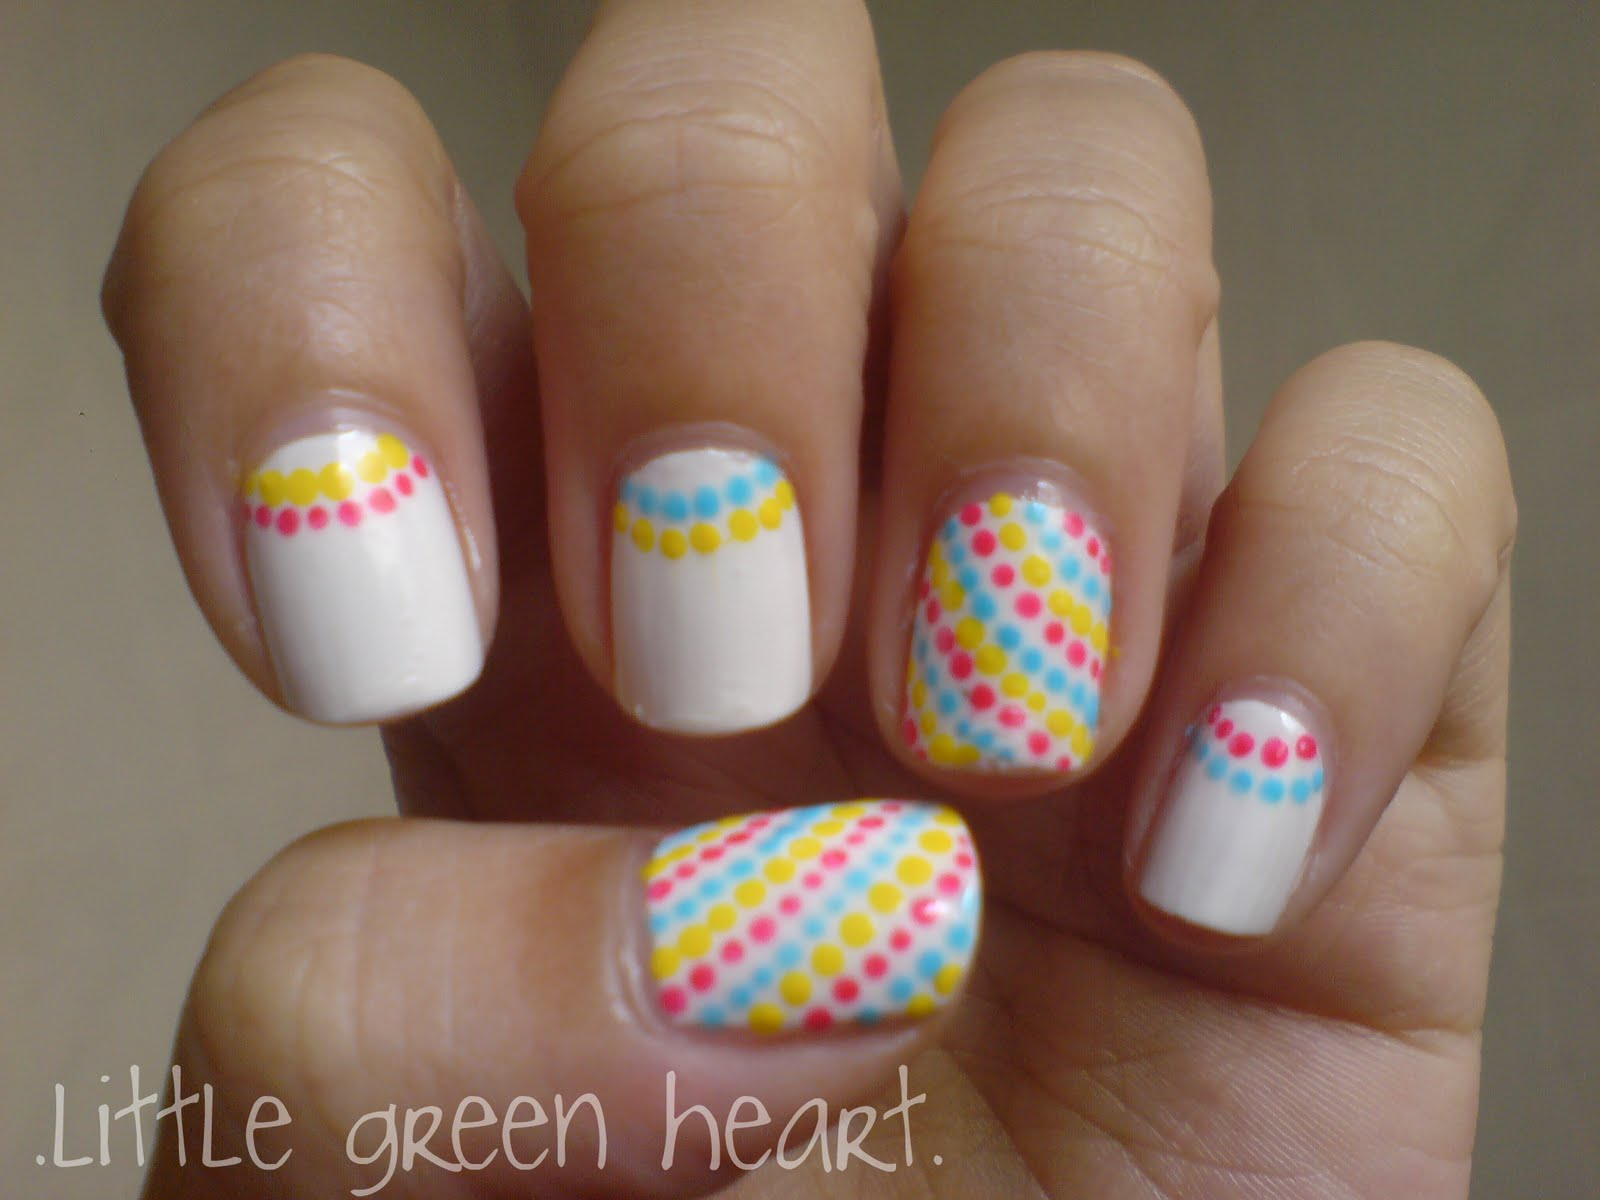 13 Simple But Cute Nail Designs Images